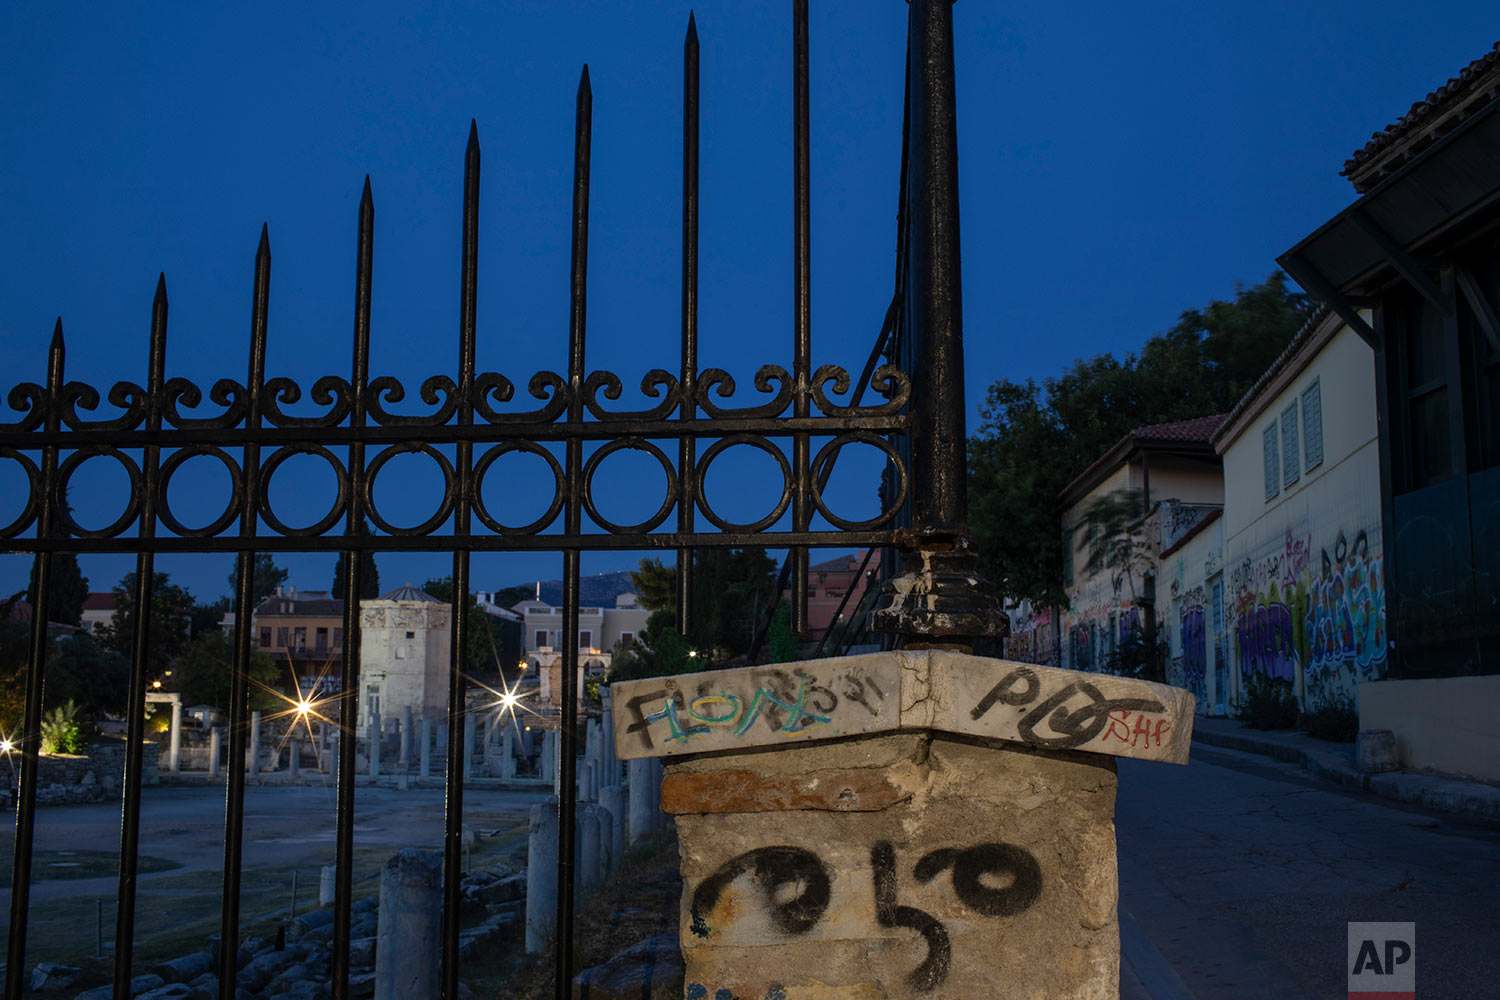 In this Monday, July 22, 2019 photo, a fence and buildings are covered with graffiti outside the ancient Roman agora in Plaka district of Athens. (AP Photo/Petros Giannakouris)